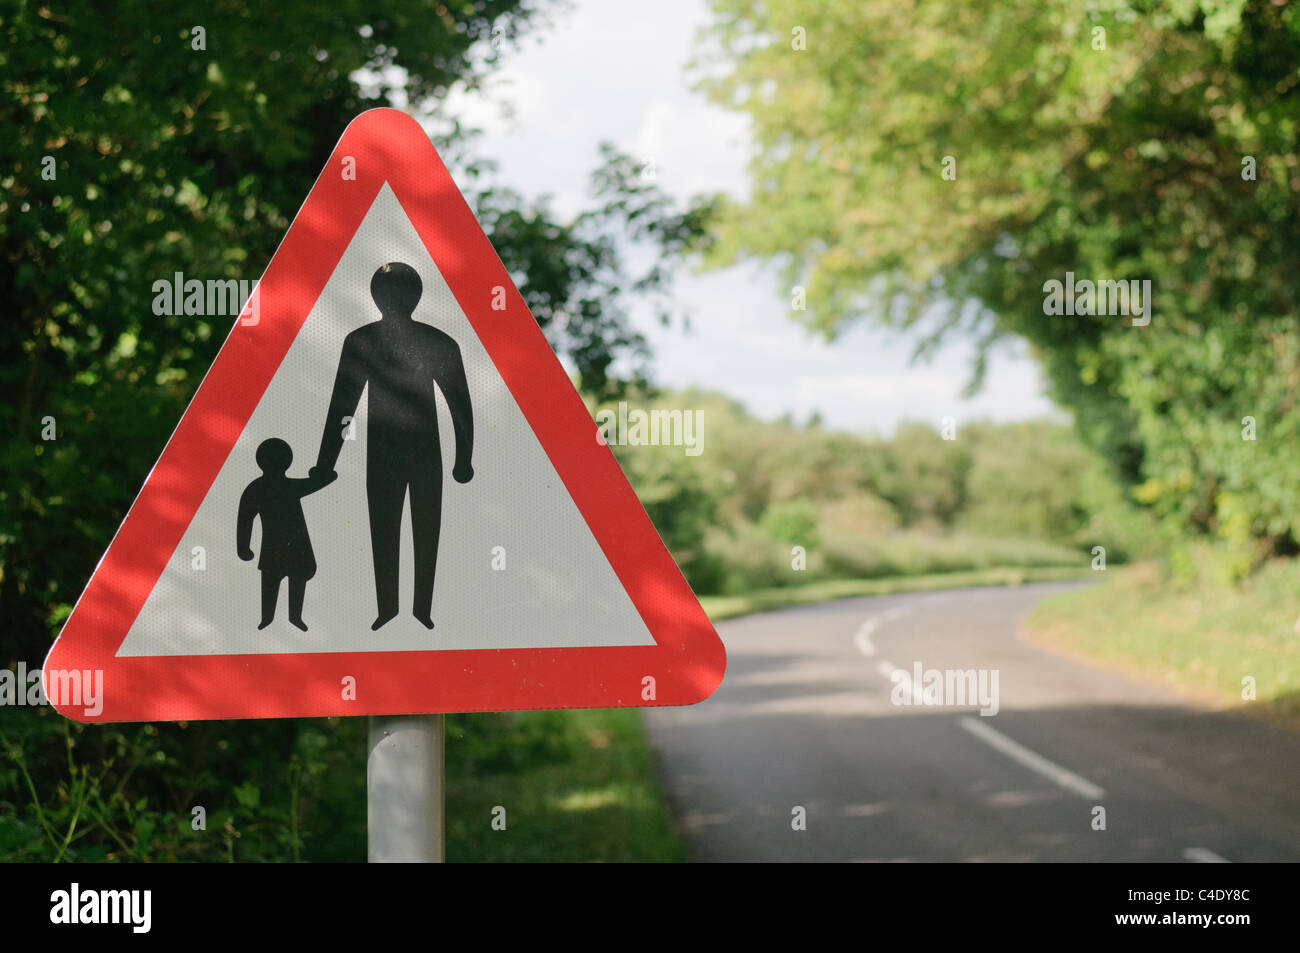 Triangular sign warning drivers of the presence of pedestrians on a narrow rural road - Stock Image